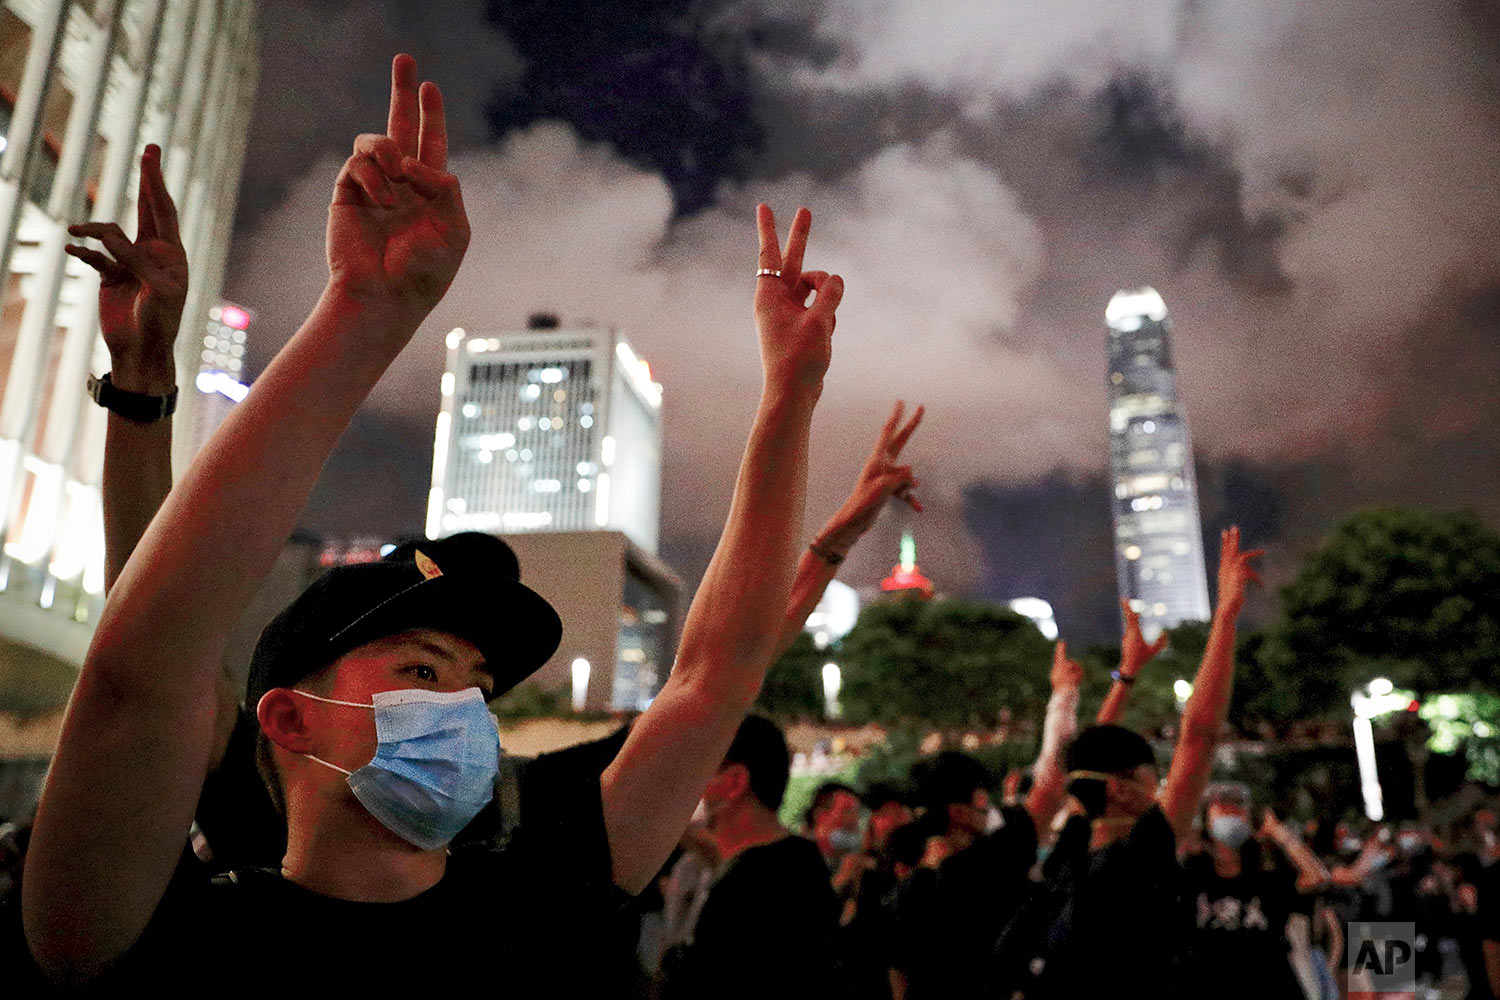 Protesters use hand signals to gestures for scissors during their attempt to break into the Legislative building in Hong Kong, July 1, 2019. (AP Photo/Vincent Yu)